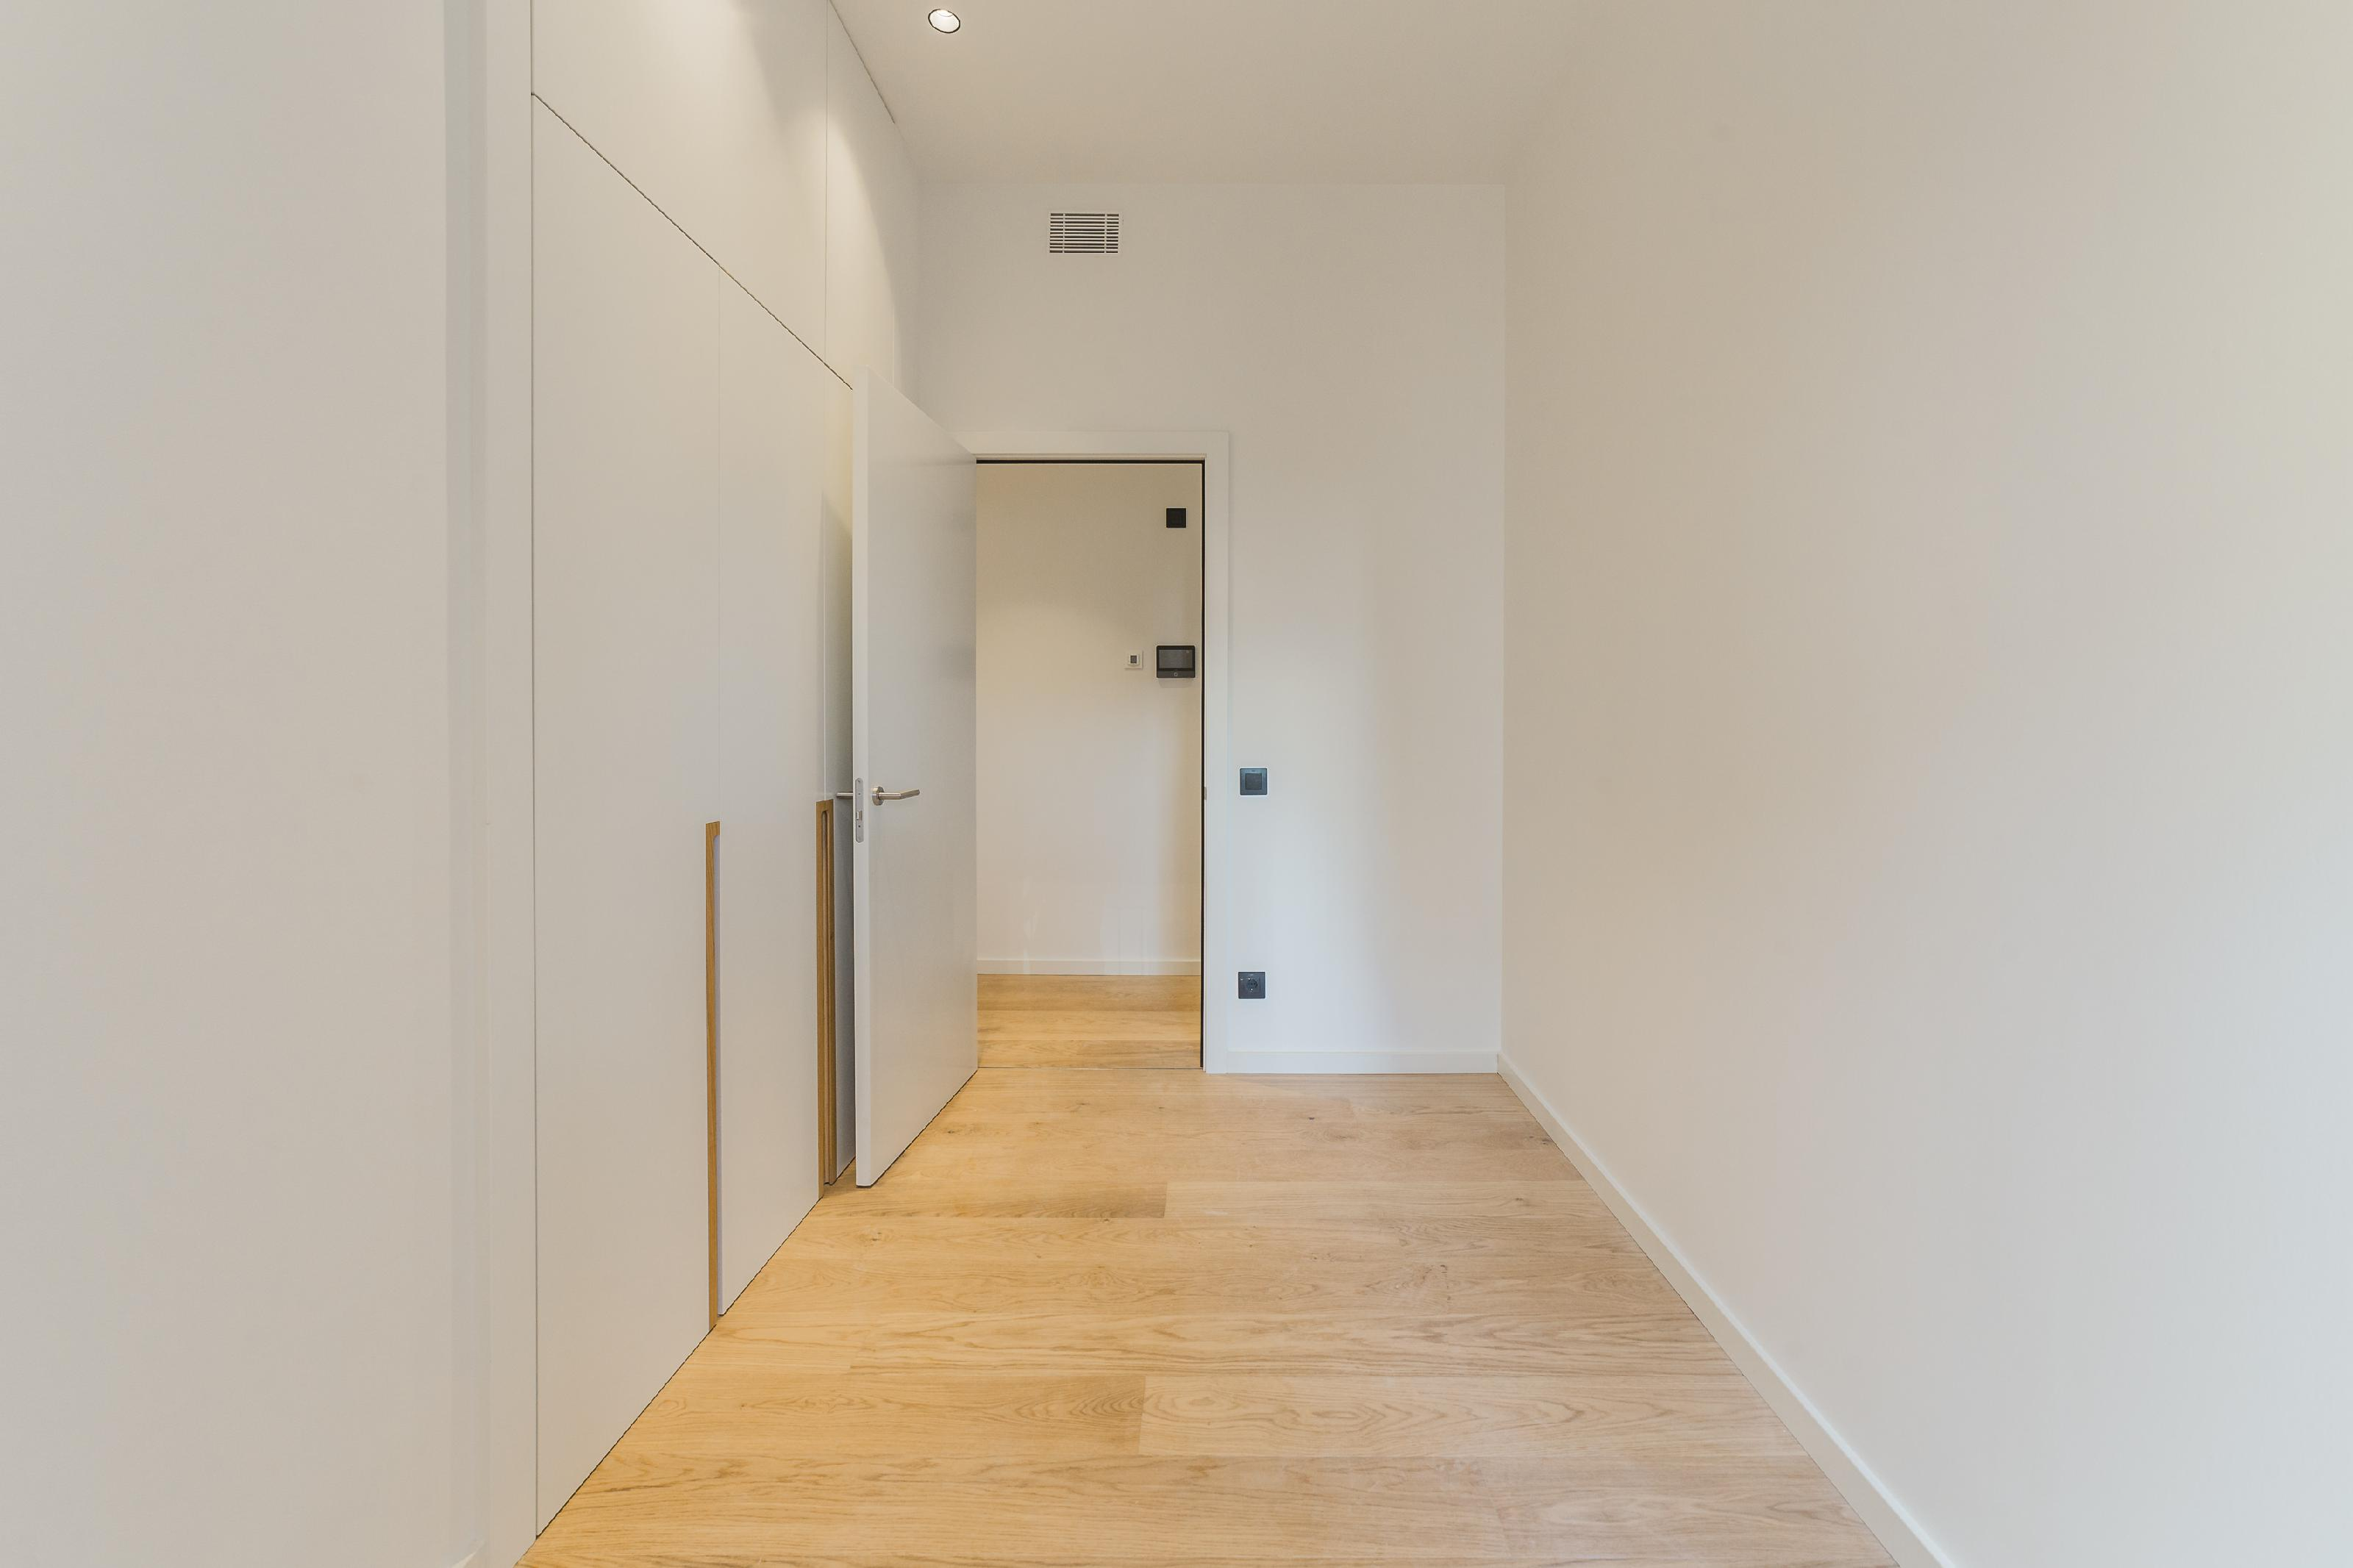 182474 Apartment for sale in Eixample, Old Left Eixample 34